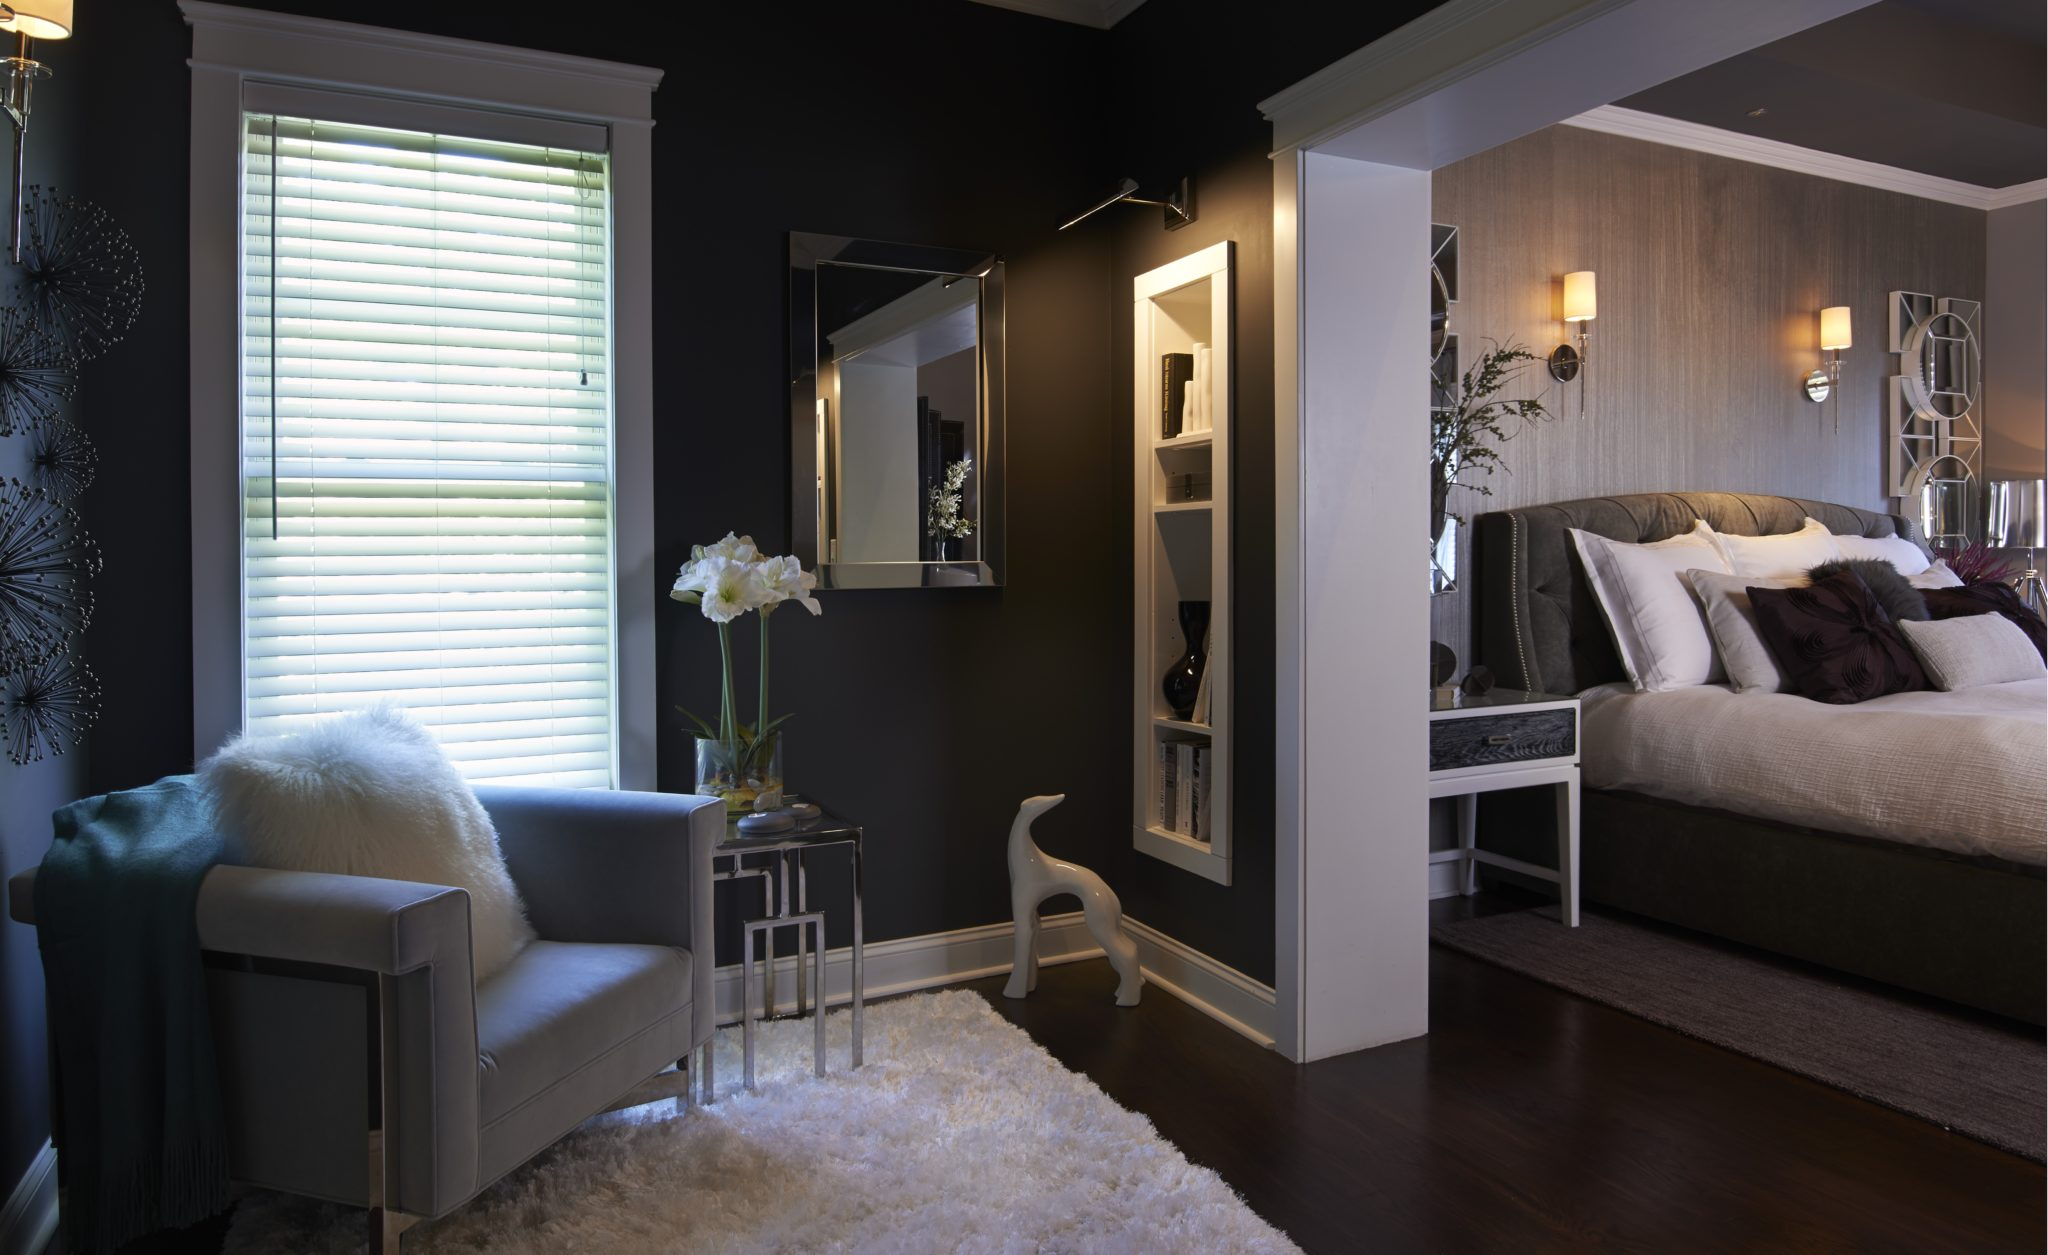 Transitional bedroom by Stratton Design Group